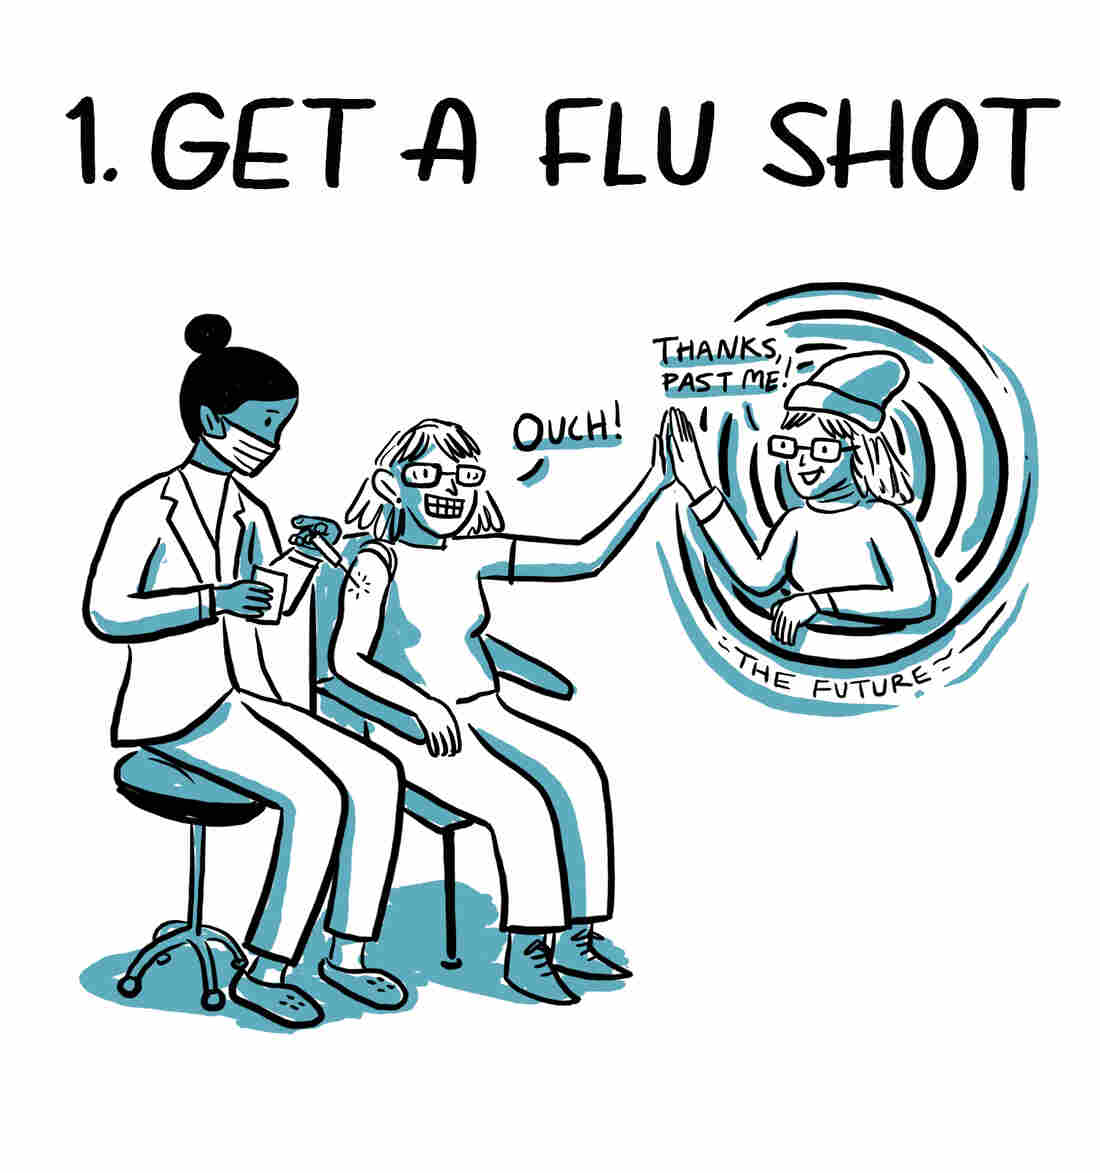 1. Get a flu shot. Your future self will thank you.